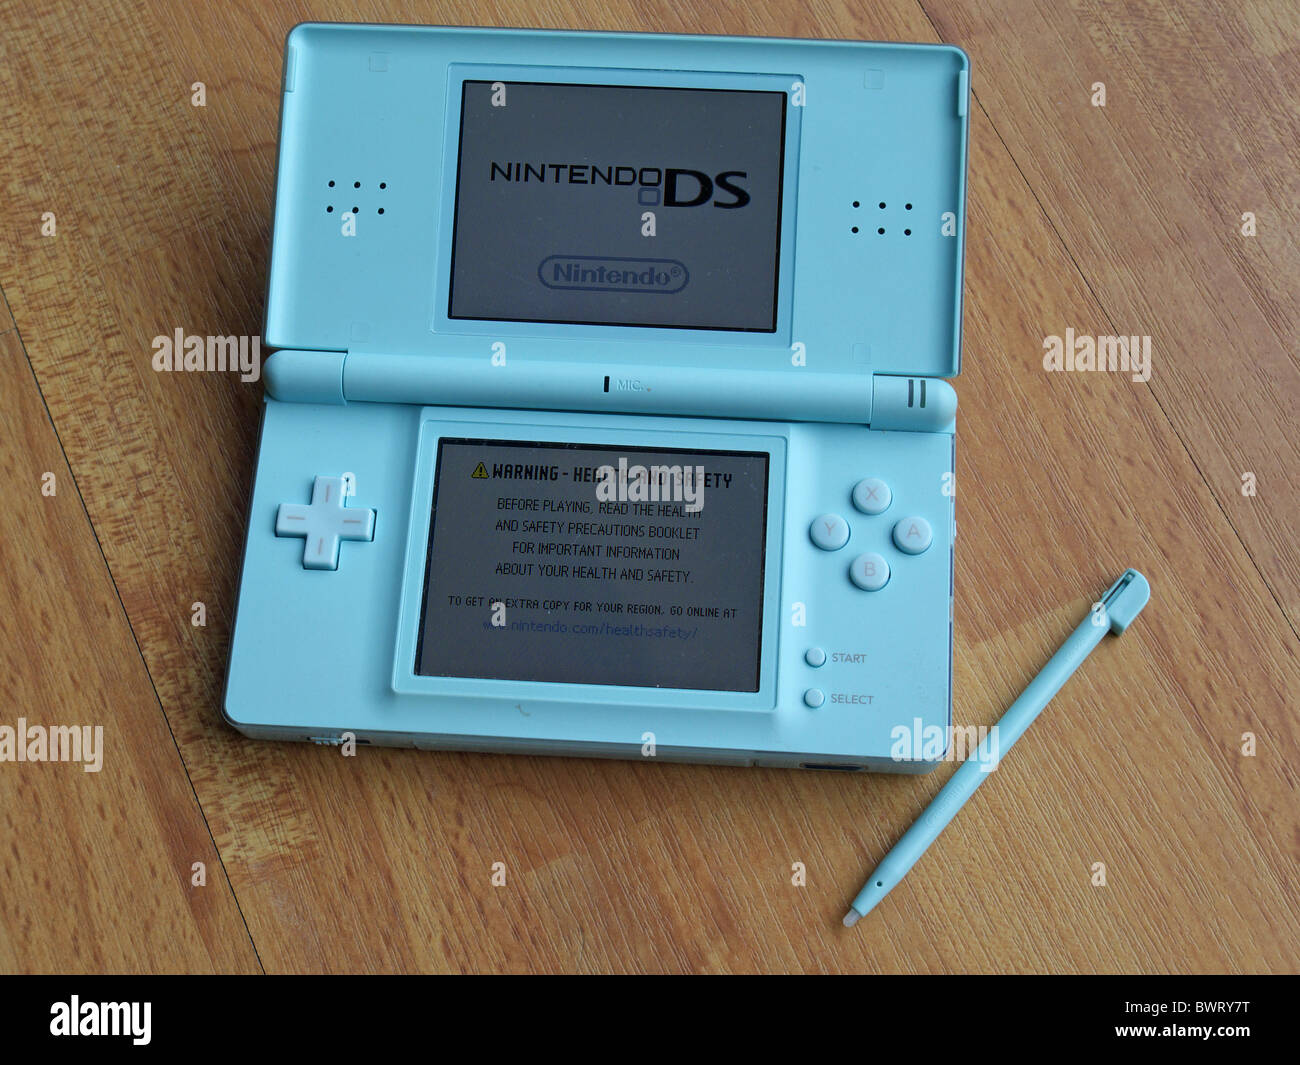 nintendo ds lite handheld games console stock photo 33103052 alamy